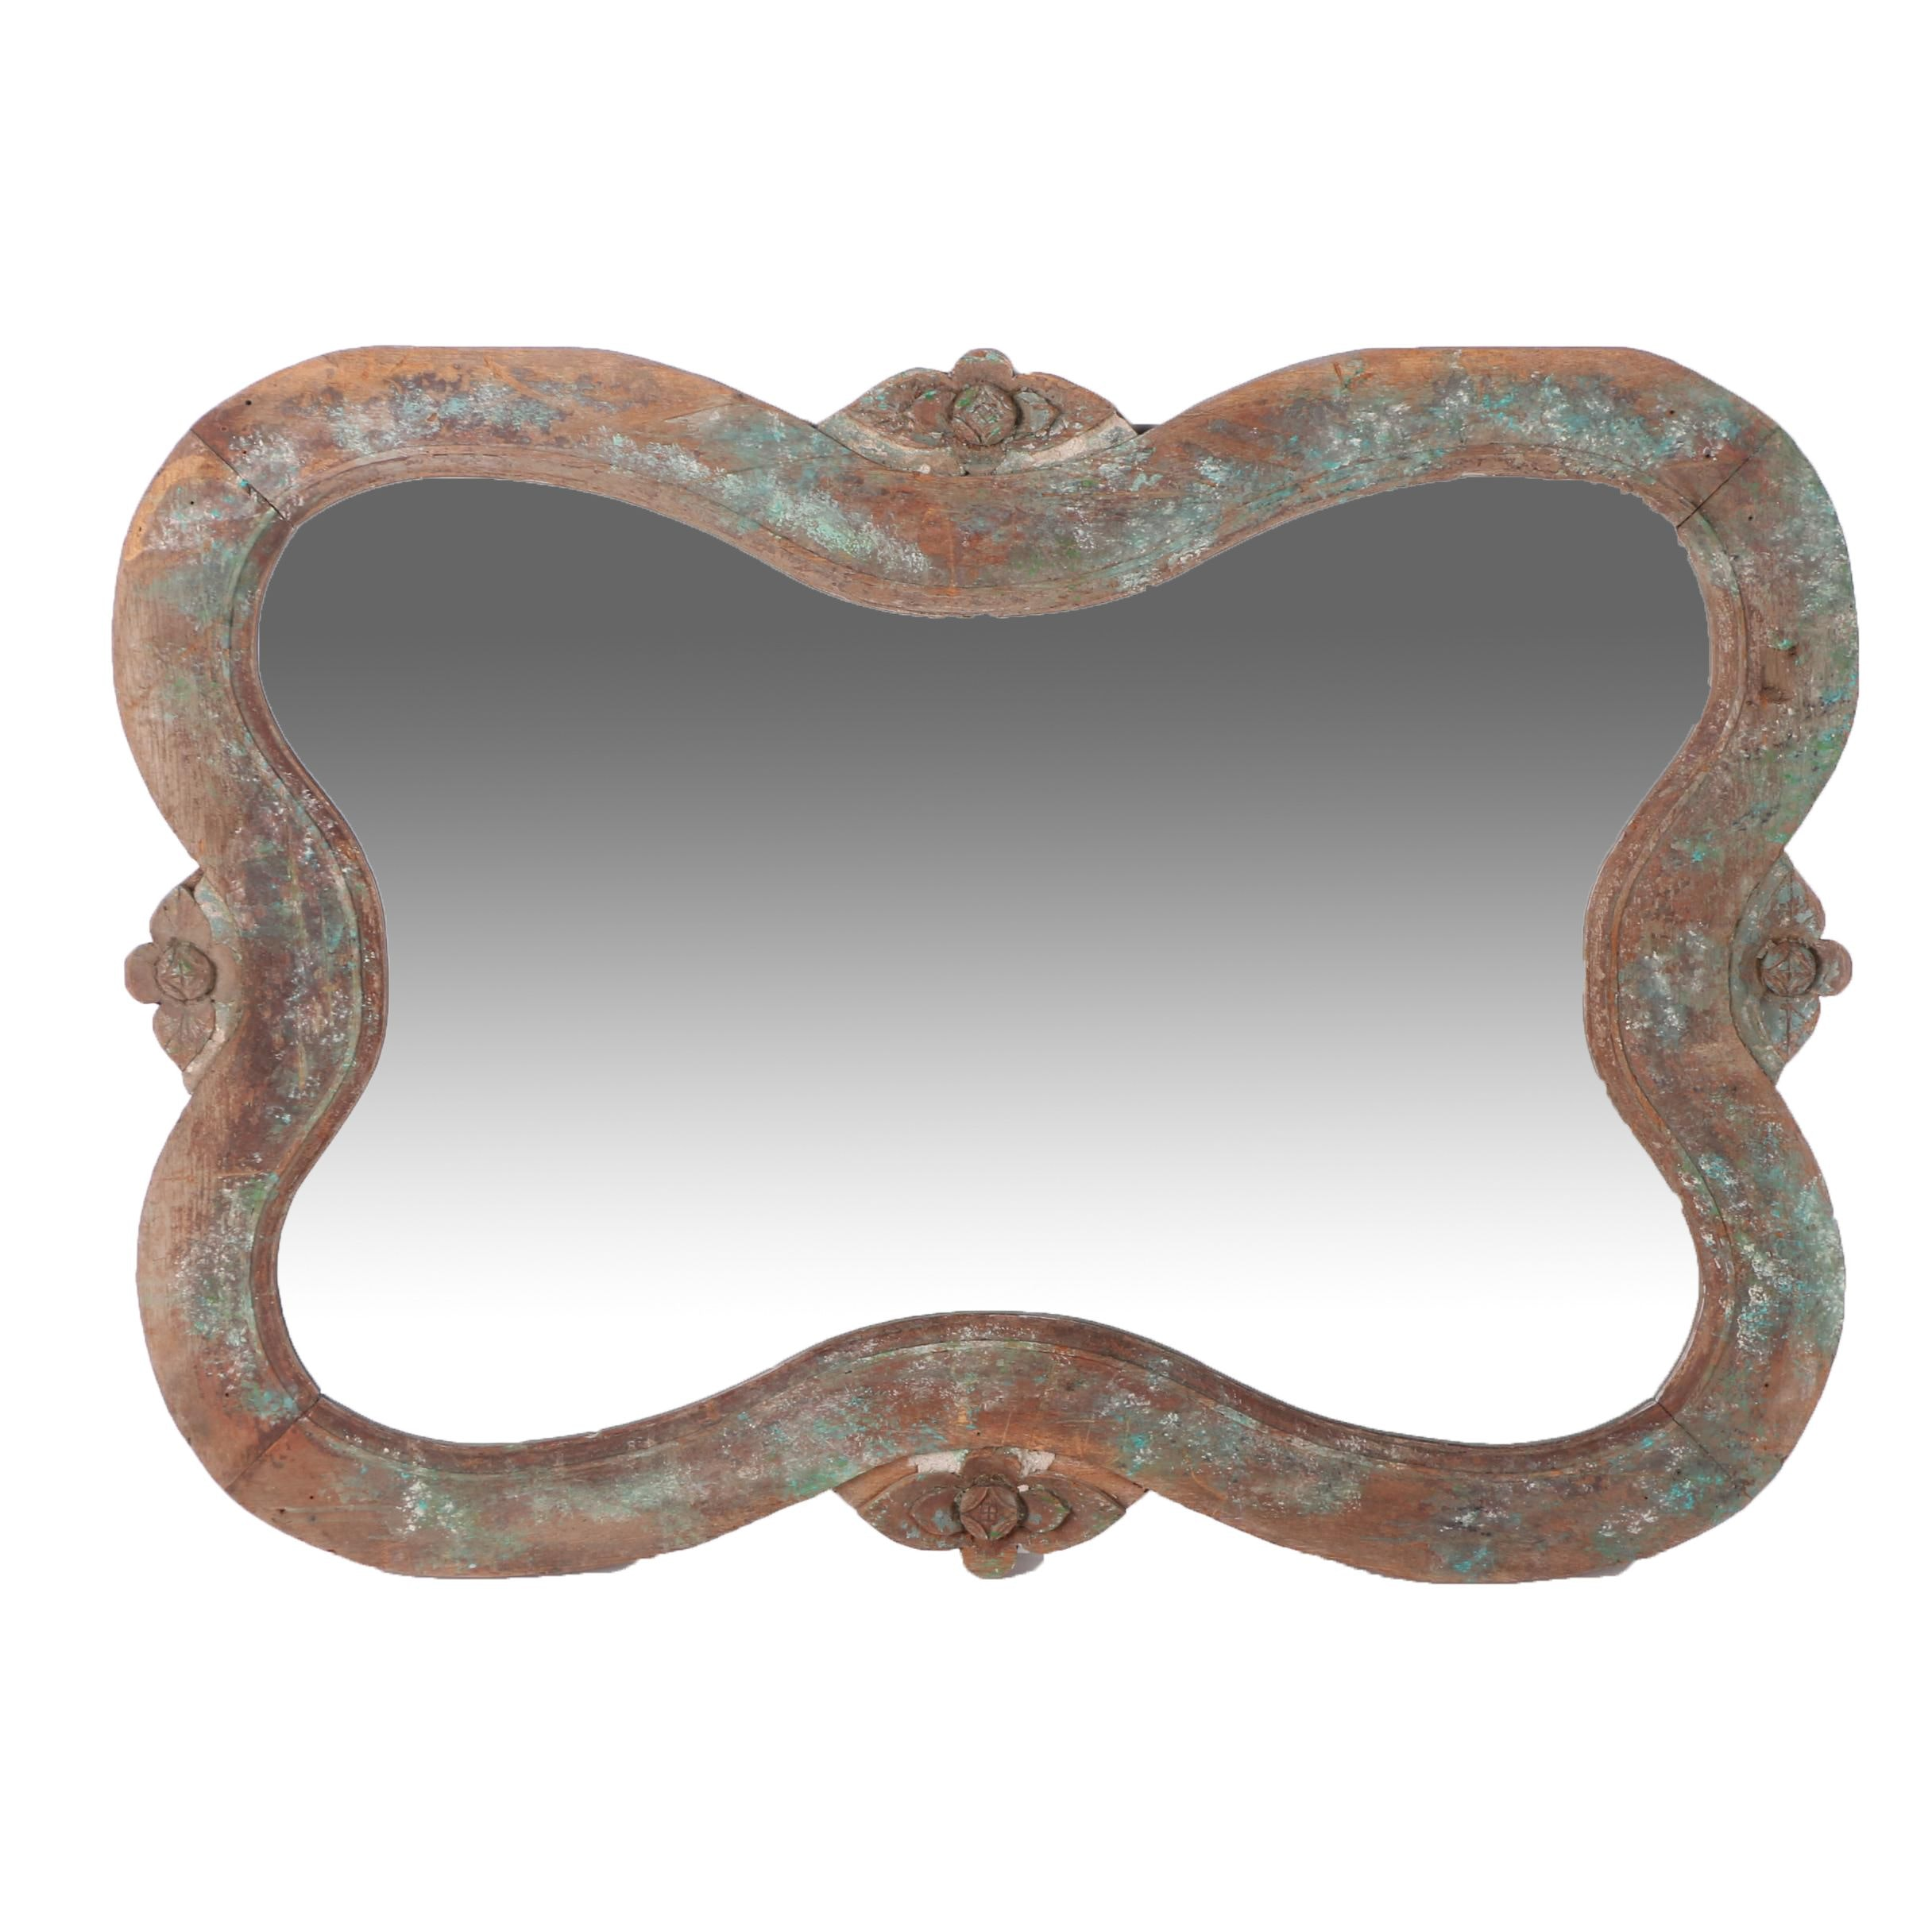 Large Wall Mirror with Distressed Wooden Frame